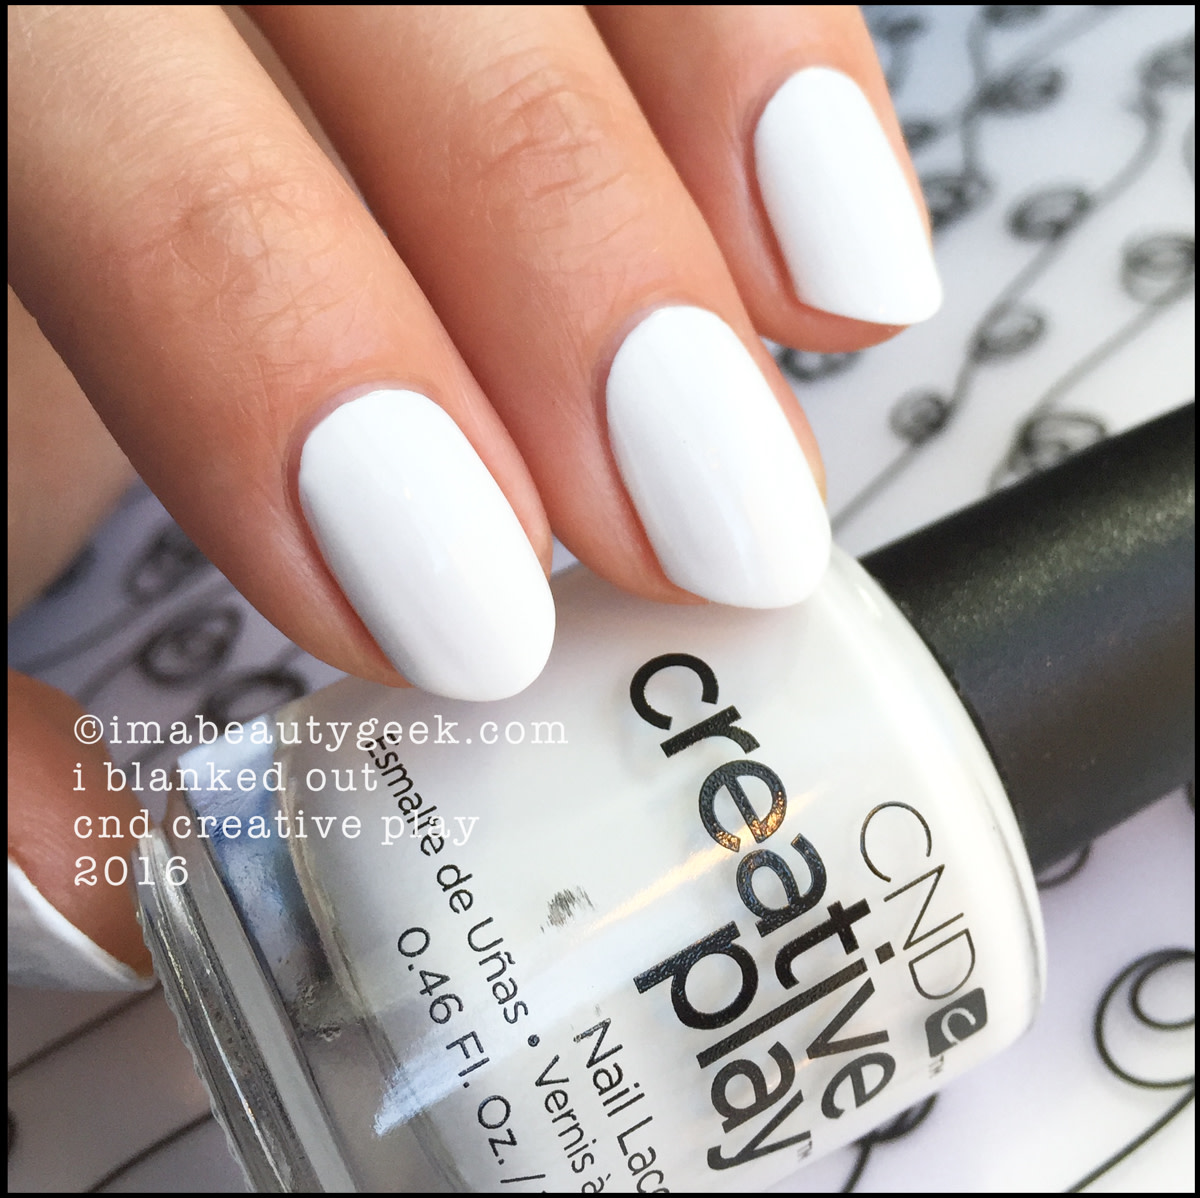 CND Creative Play I Blanked Out_CND Creative Play Nail Polish Swatches.jpg